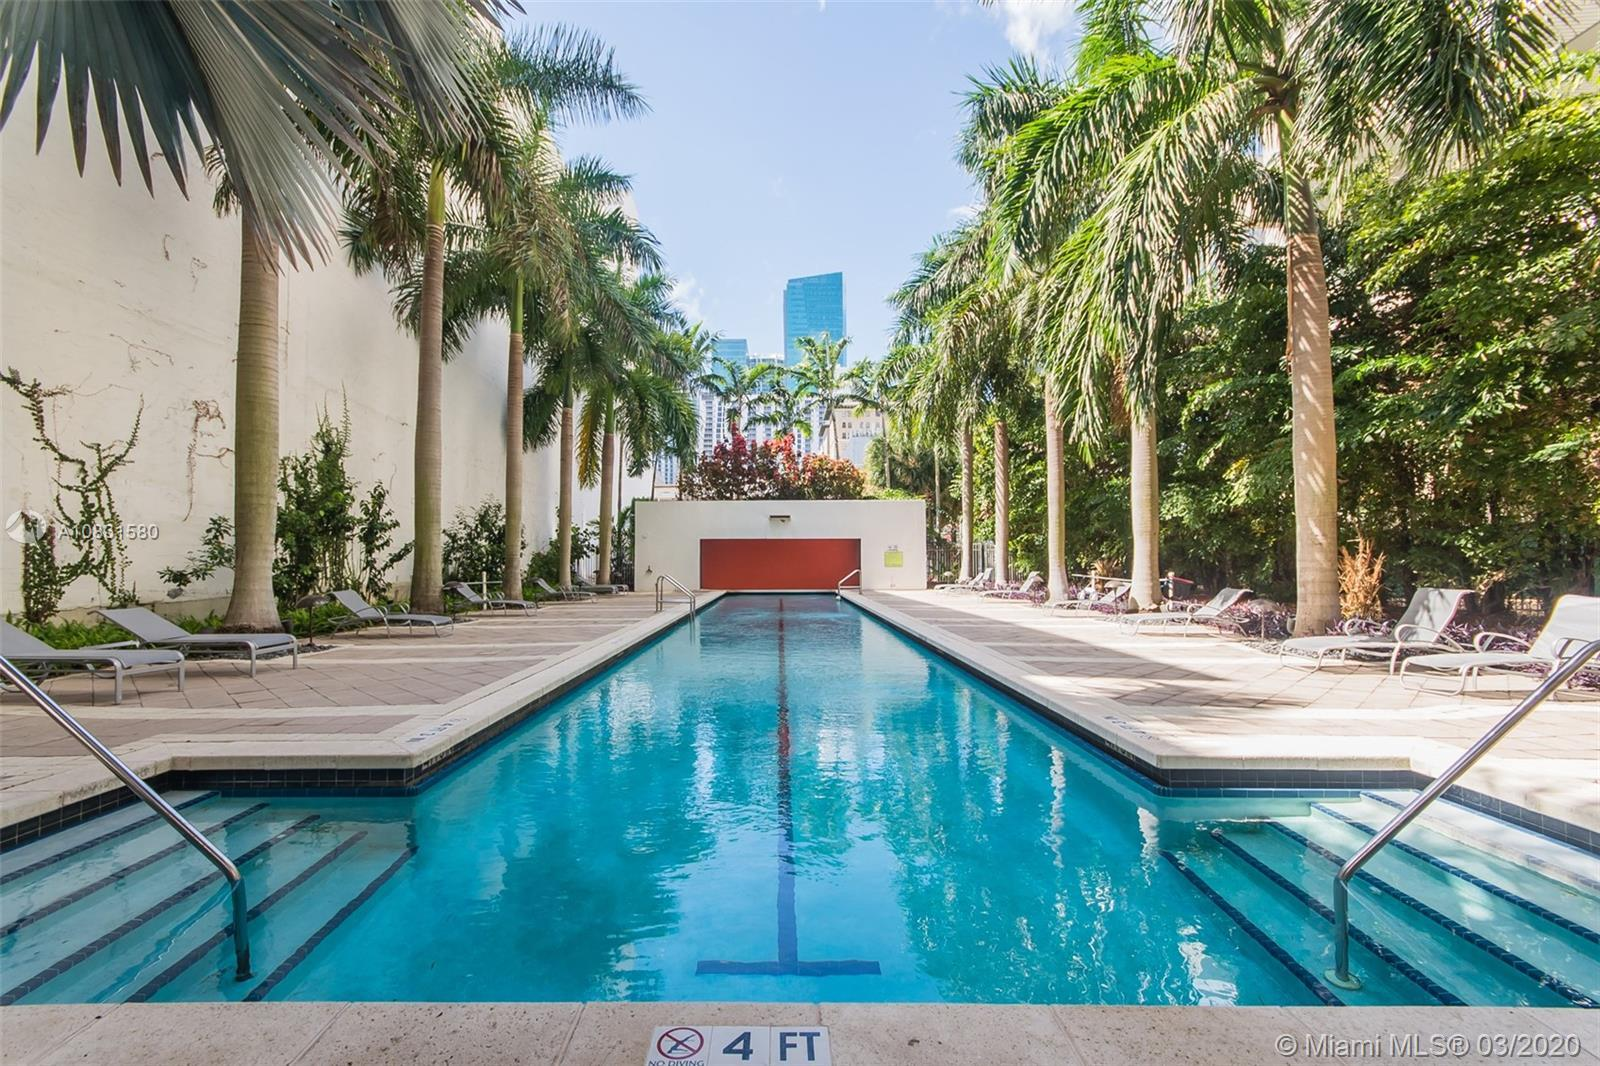 Beautiful 2 bdrms 2 bths enclosed Loft-Style condo in the heart of Miami at Loft 2. Unit has walls a